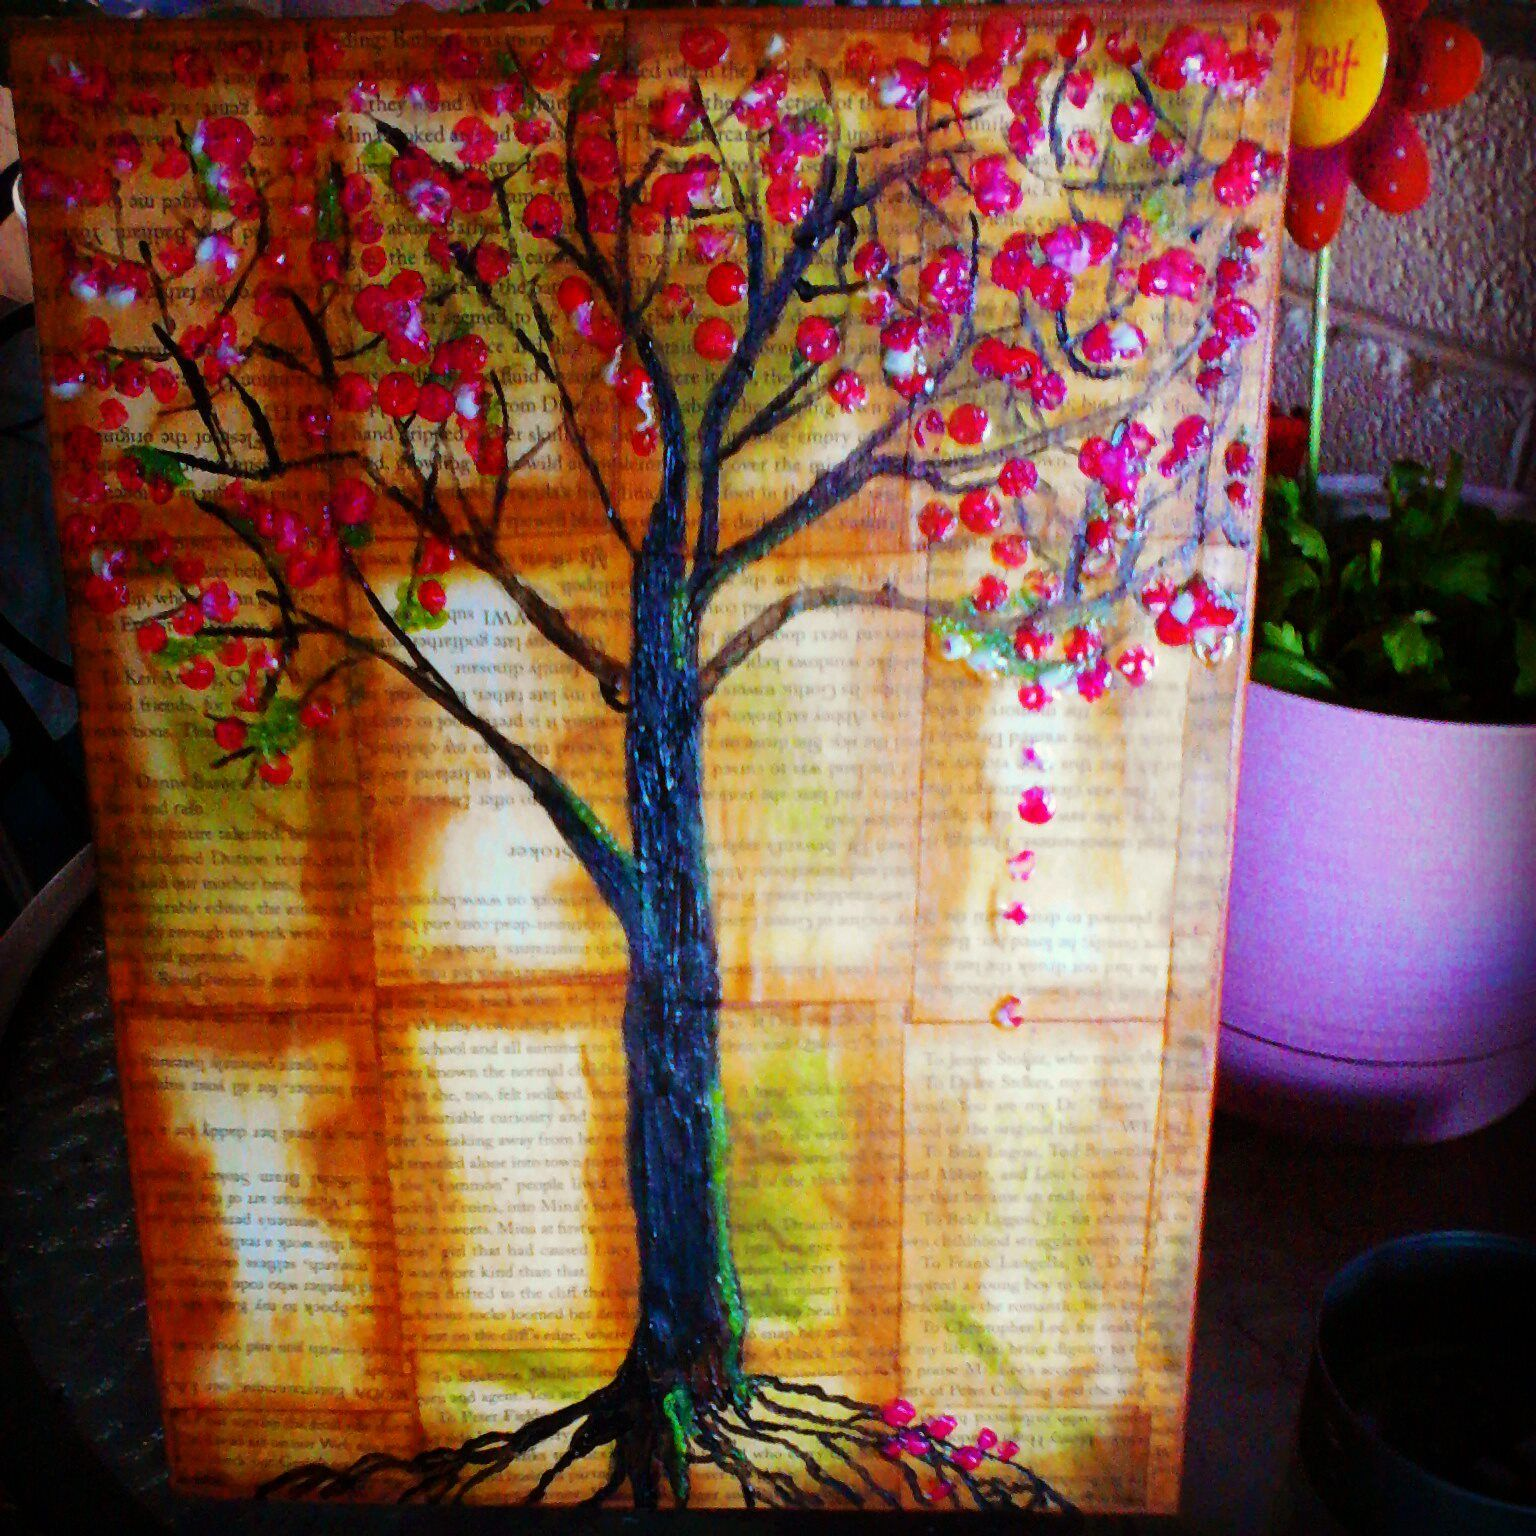 Canvas play. Pencil eraser blossoms. Book page back ground. Was really fun to make.